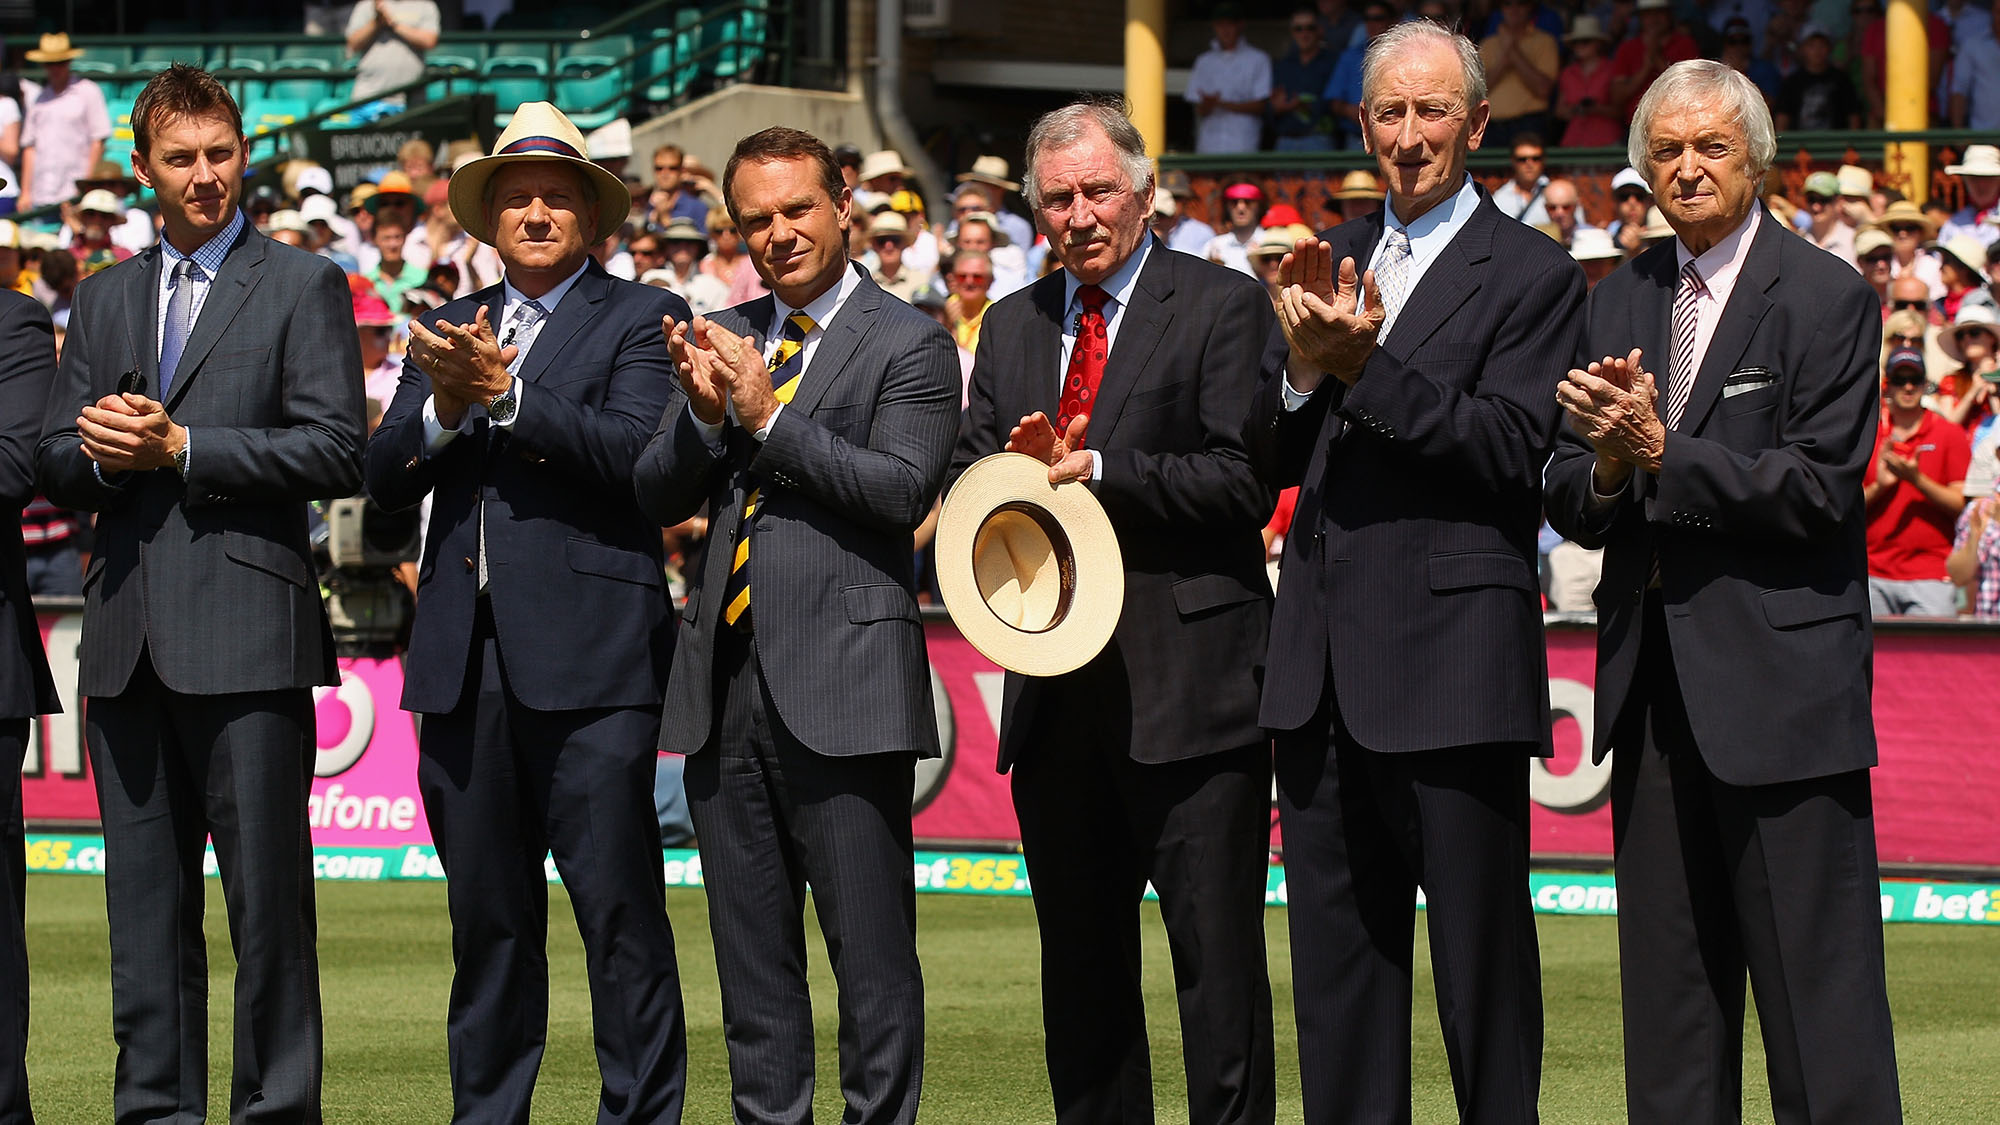 Nine loses Australia cricket broadcast rights to rivals Seven